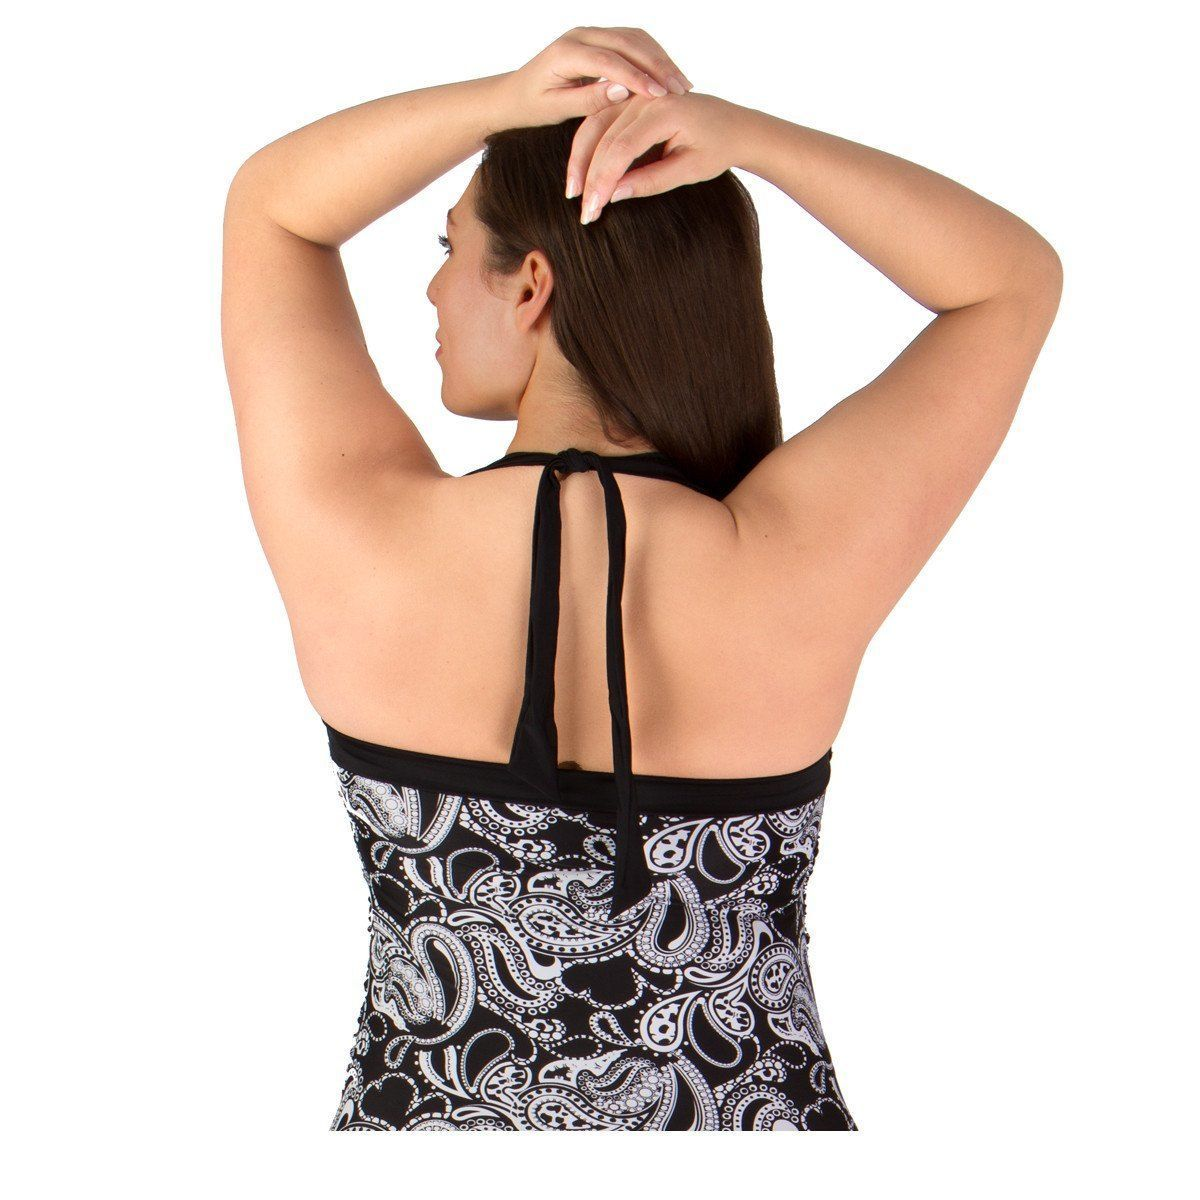 One-piece plus size swimdress and swimsuit that's great for all body types Soft cup bra and halter straps.